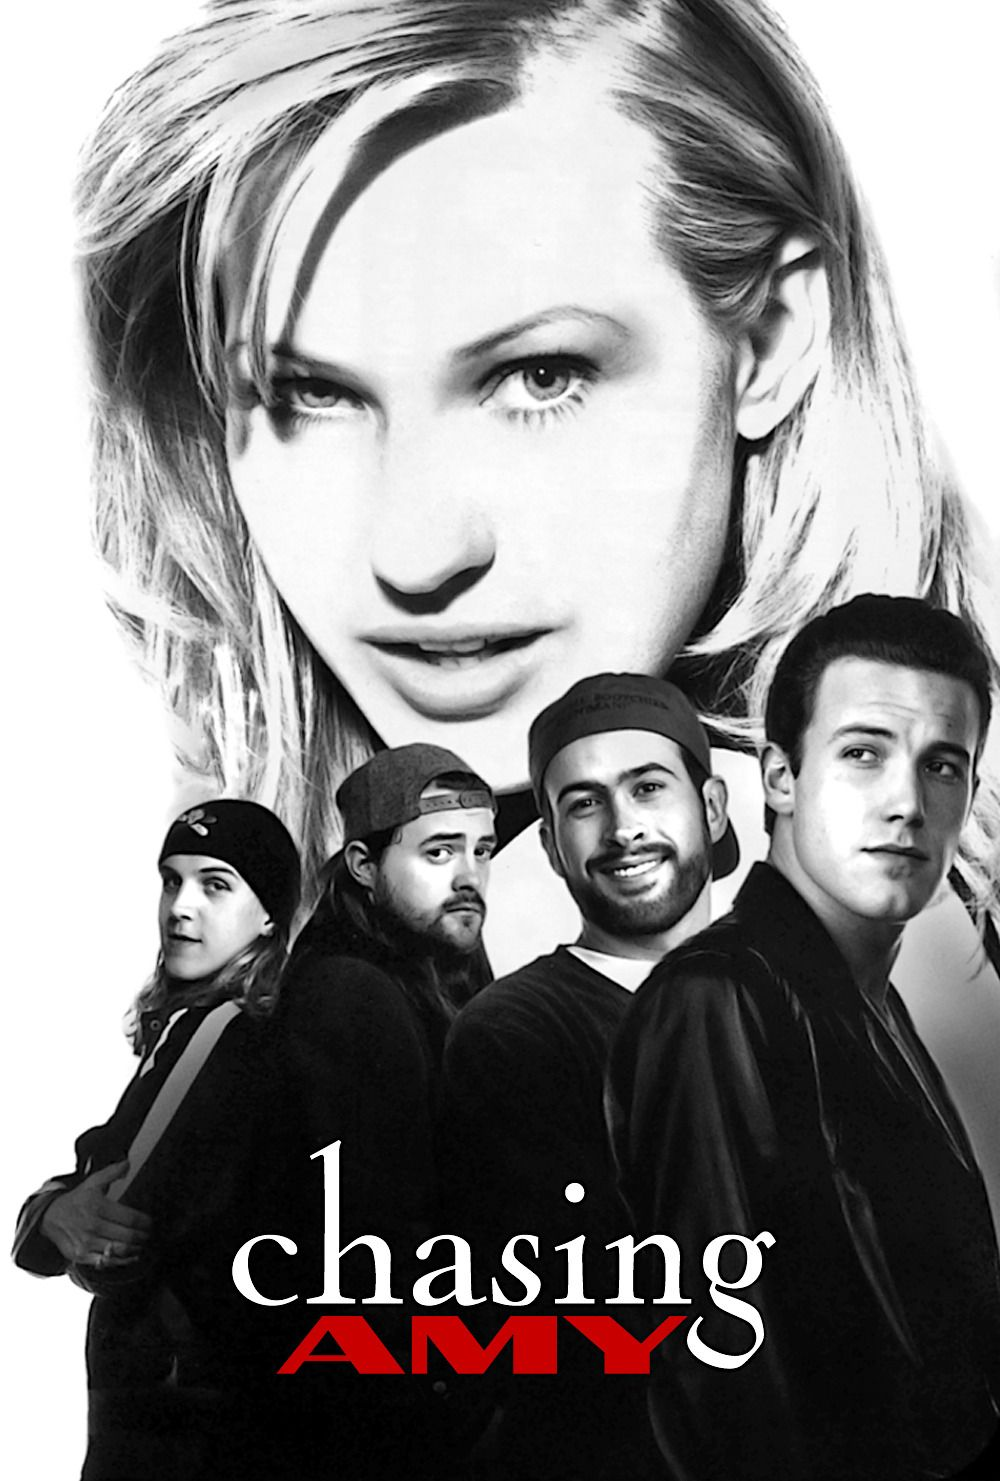 Chasing Amy Now That My Friend Is A Shared Moment